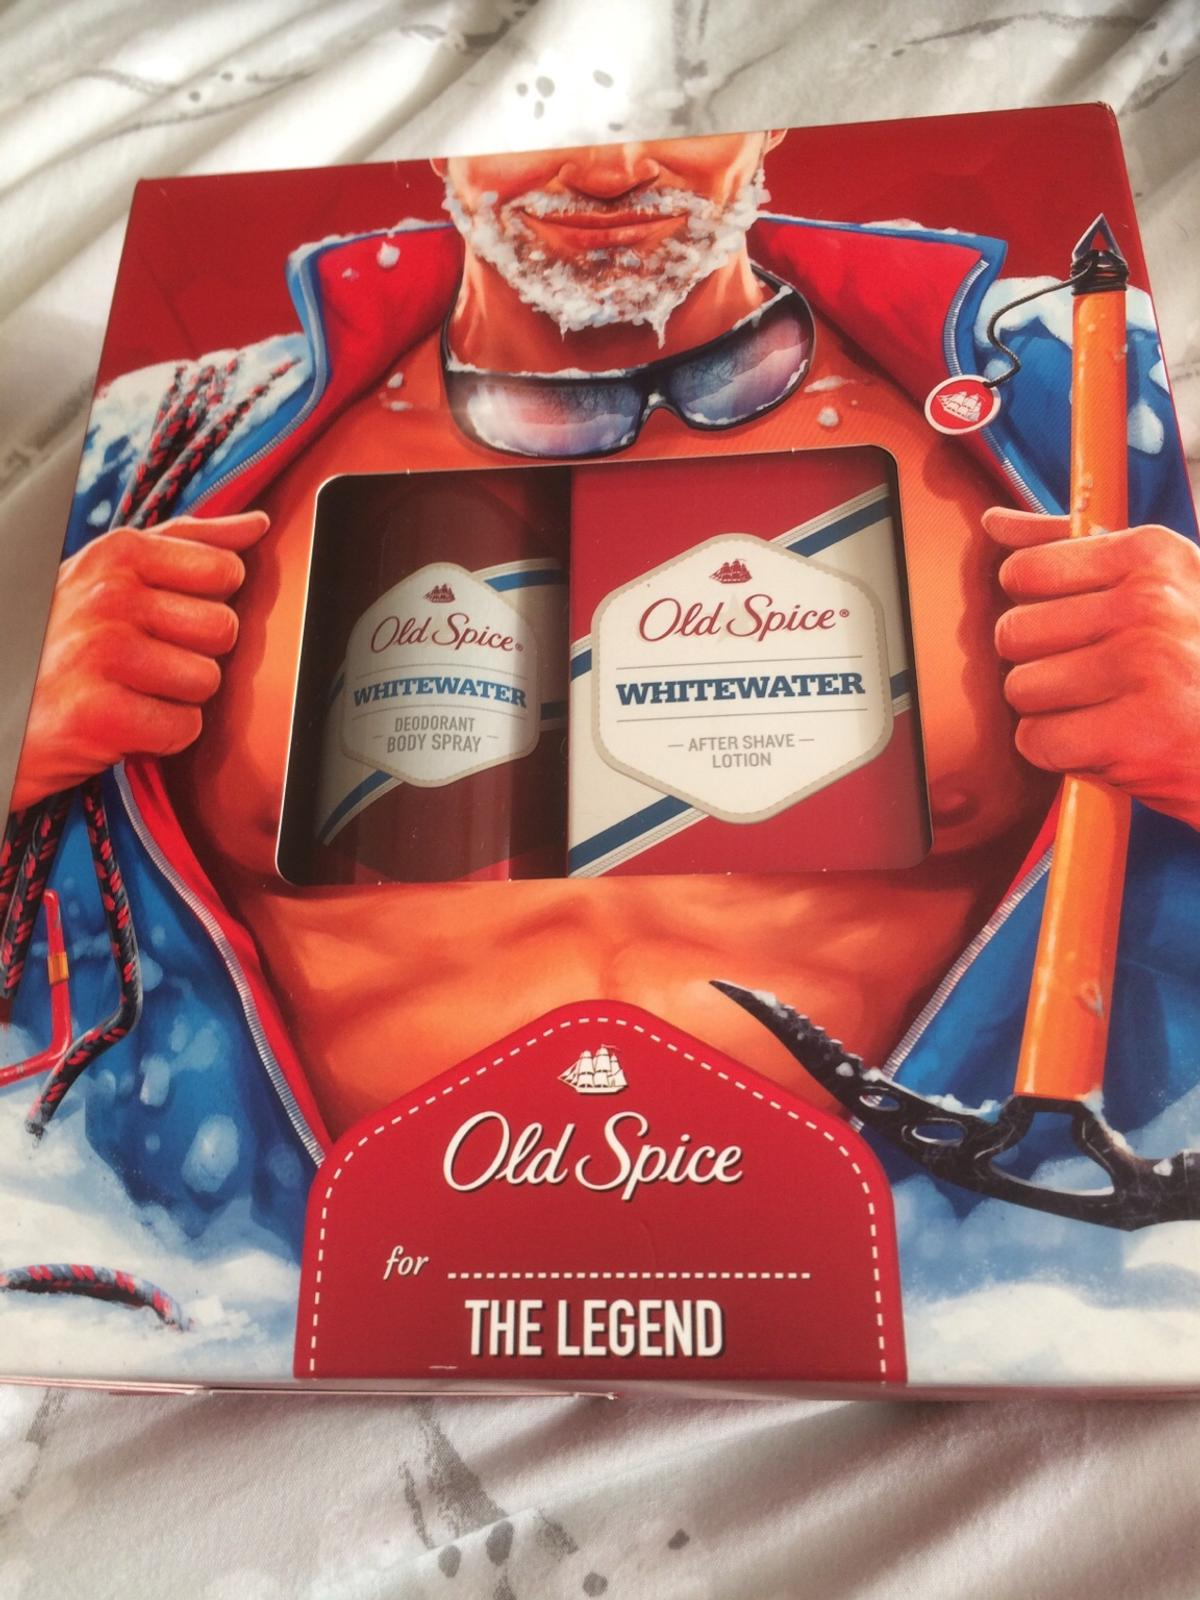 Description. Brand new & unopened Old Spice Whitewater Gift Set.